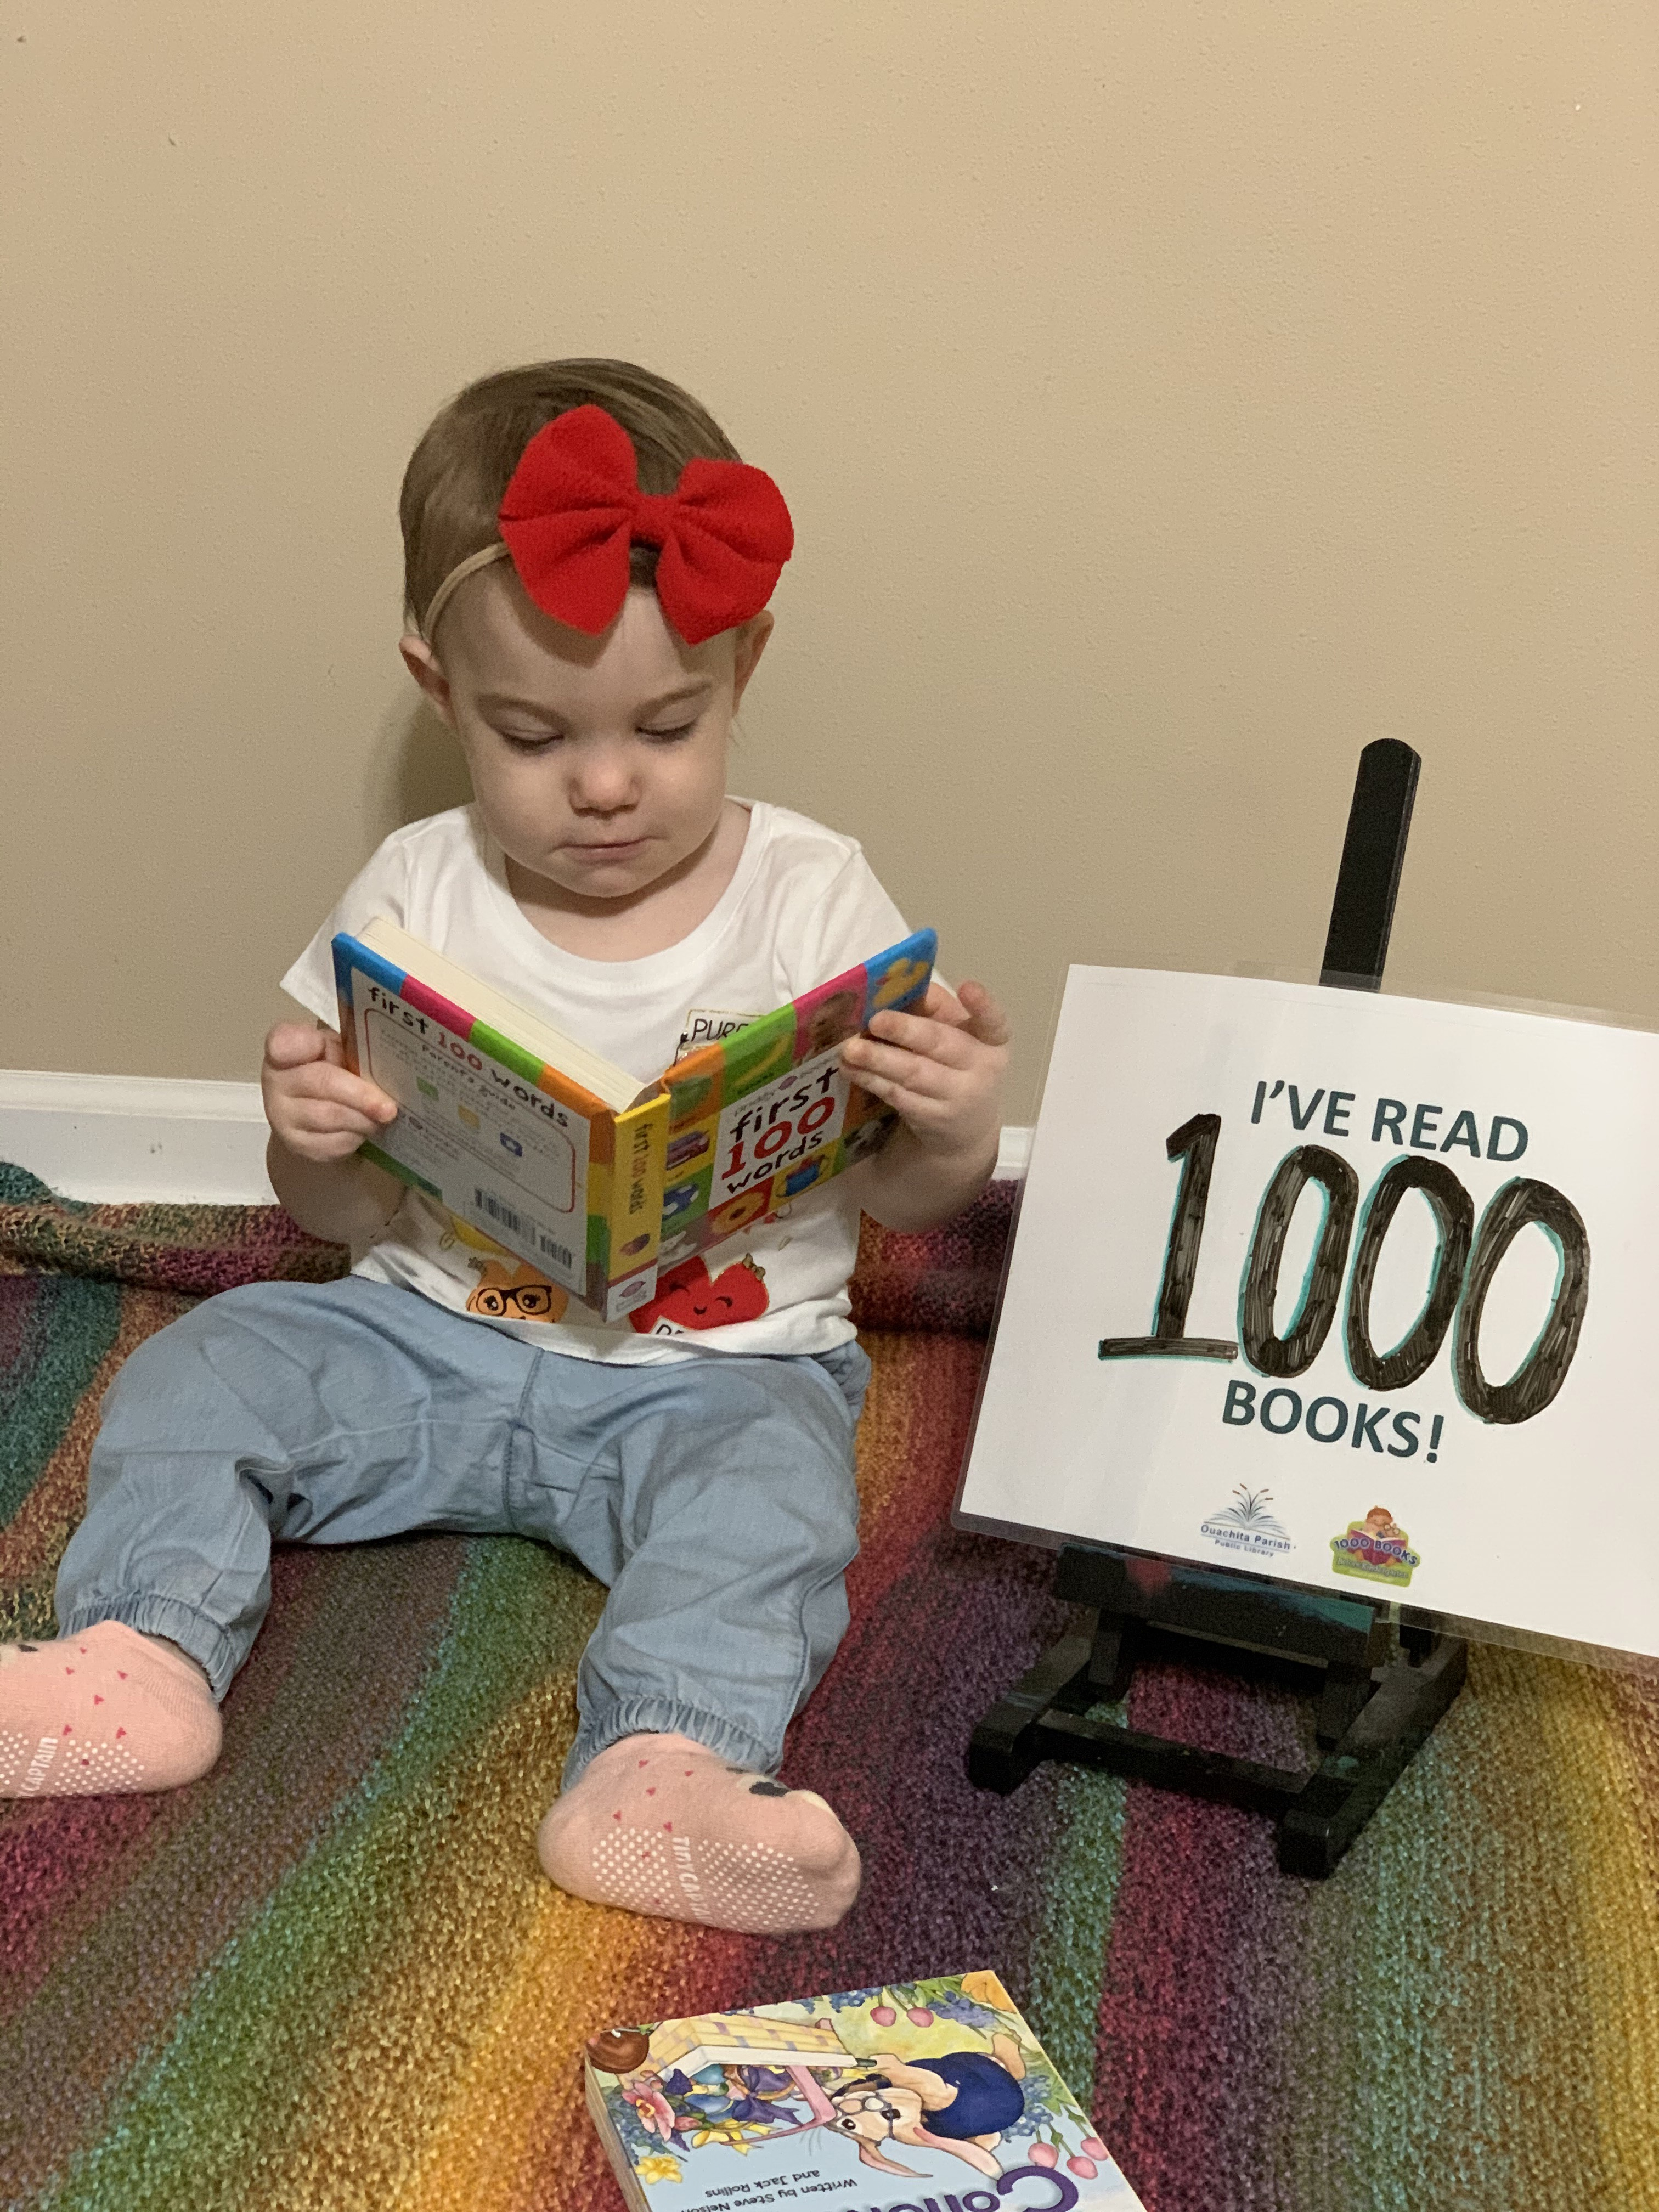 """A baby sits up with a book open in her lap. There is a sign next to her that says, """"I've read 1000 books!"""""""